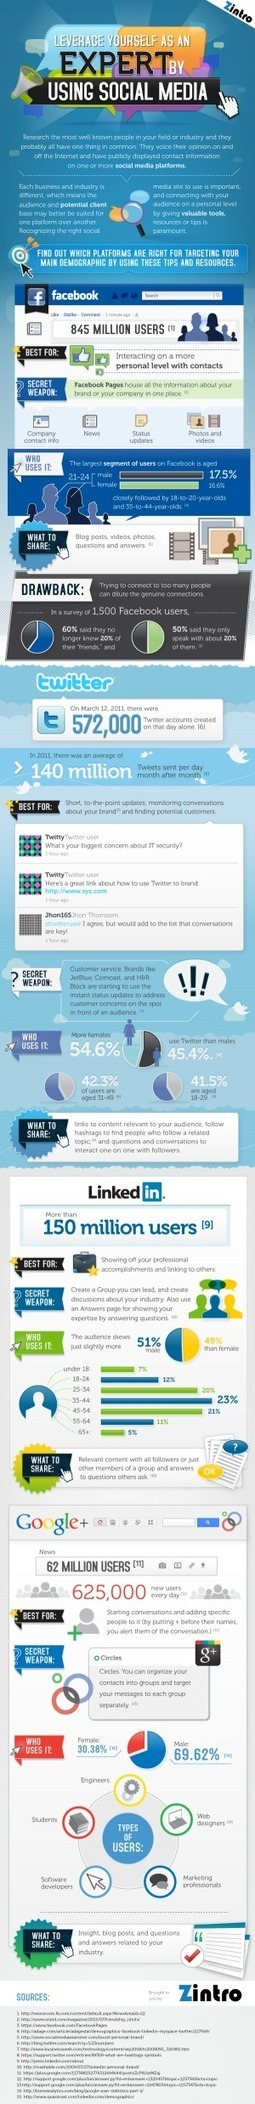 Leveraging Social Media to Showcase Your Expertise [INFOGRAPHIC] | All in one - Social Media ROI | Scoop.it